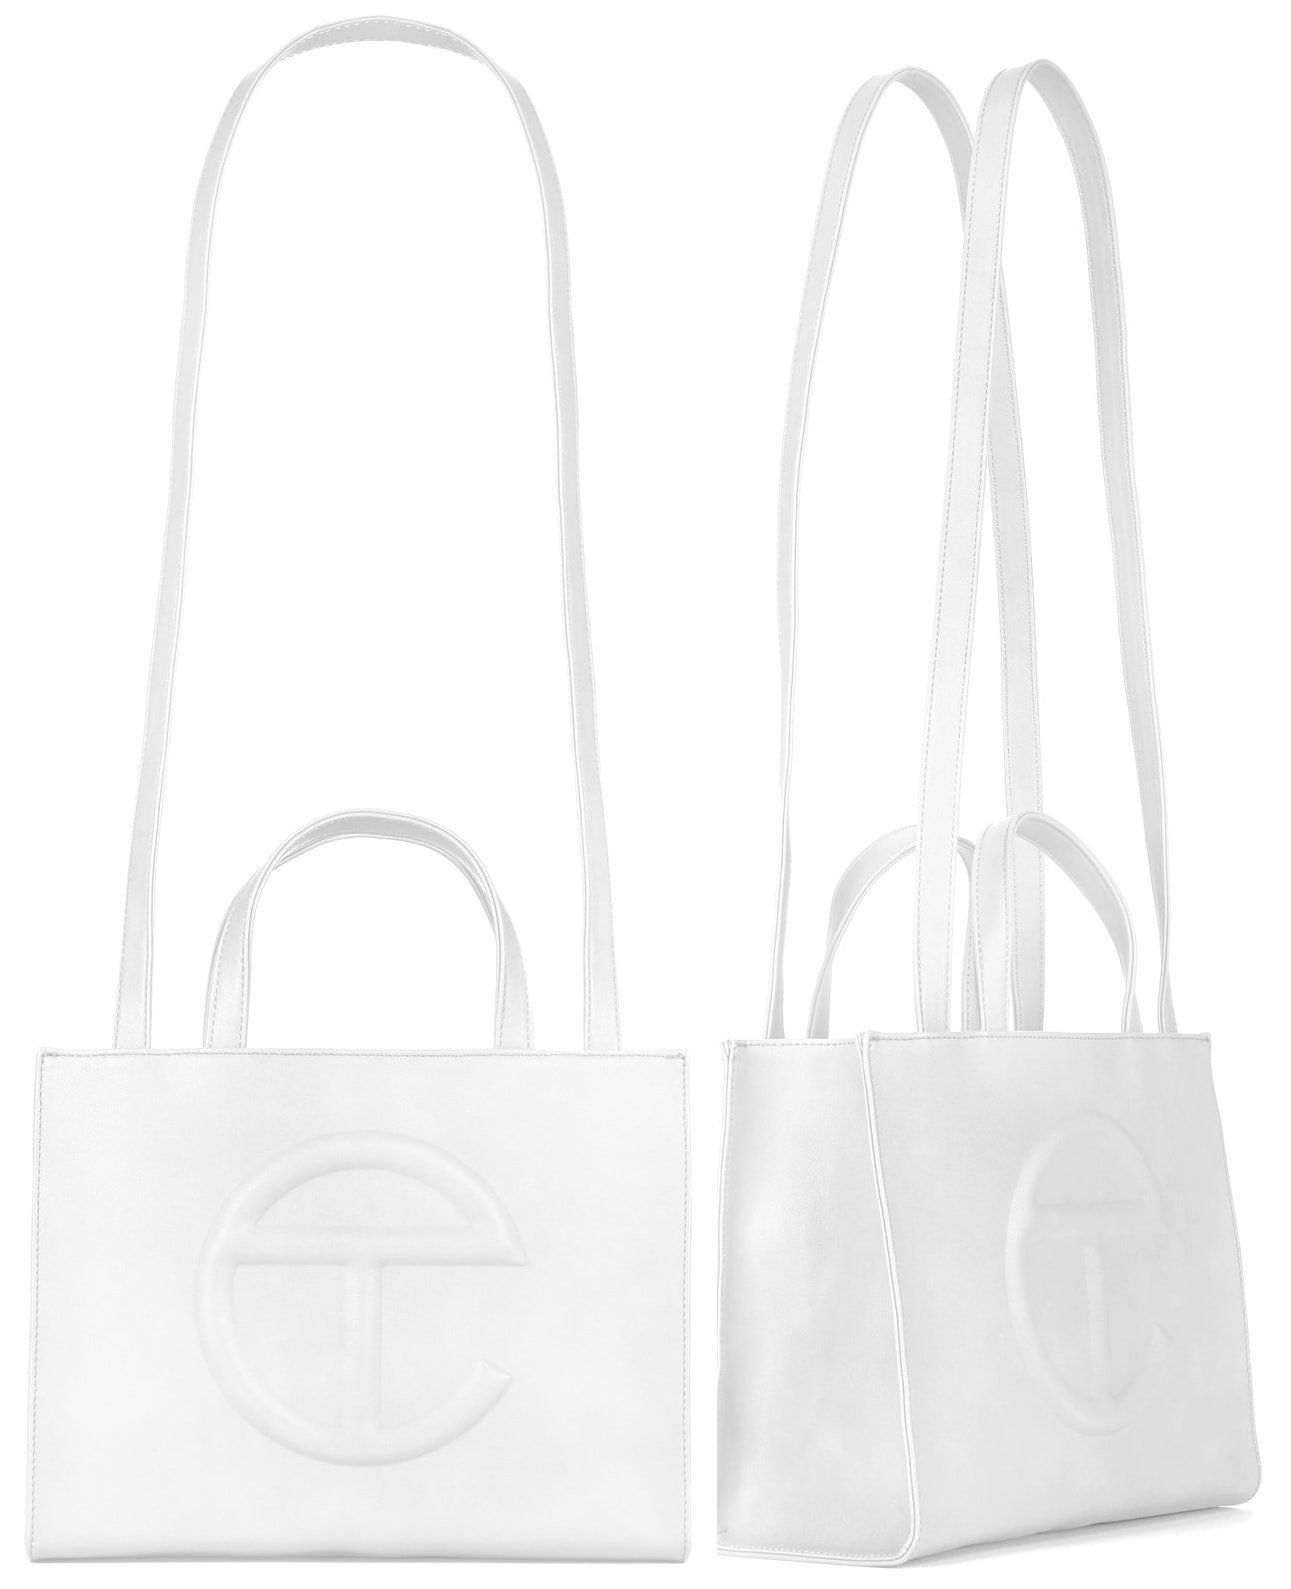 The Telfar medium shopping bag measures 10.75 inches tall, 15 inches wide, and has a depth of five inches